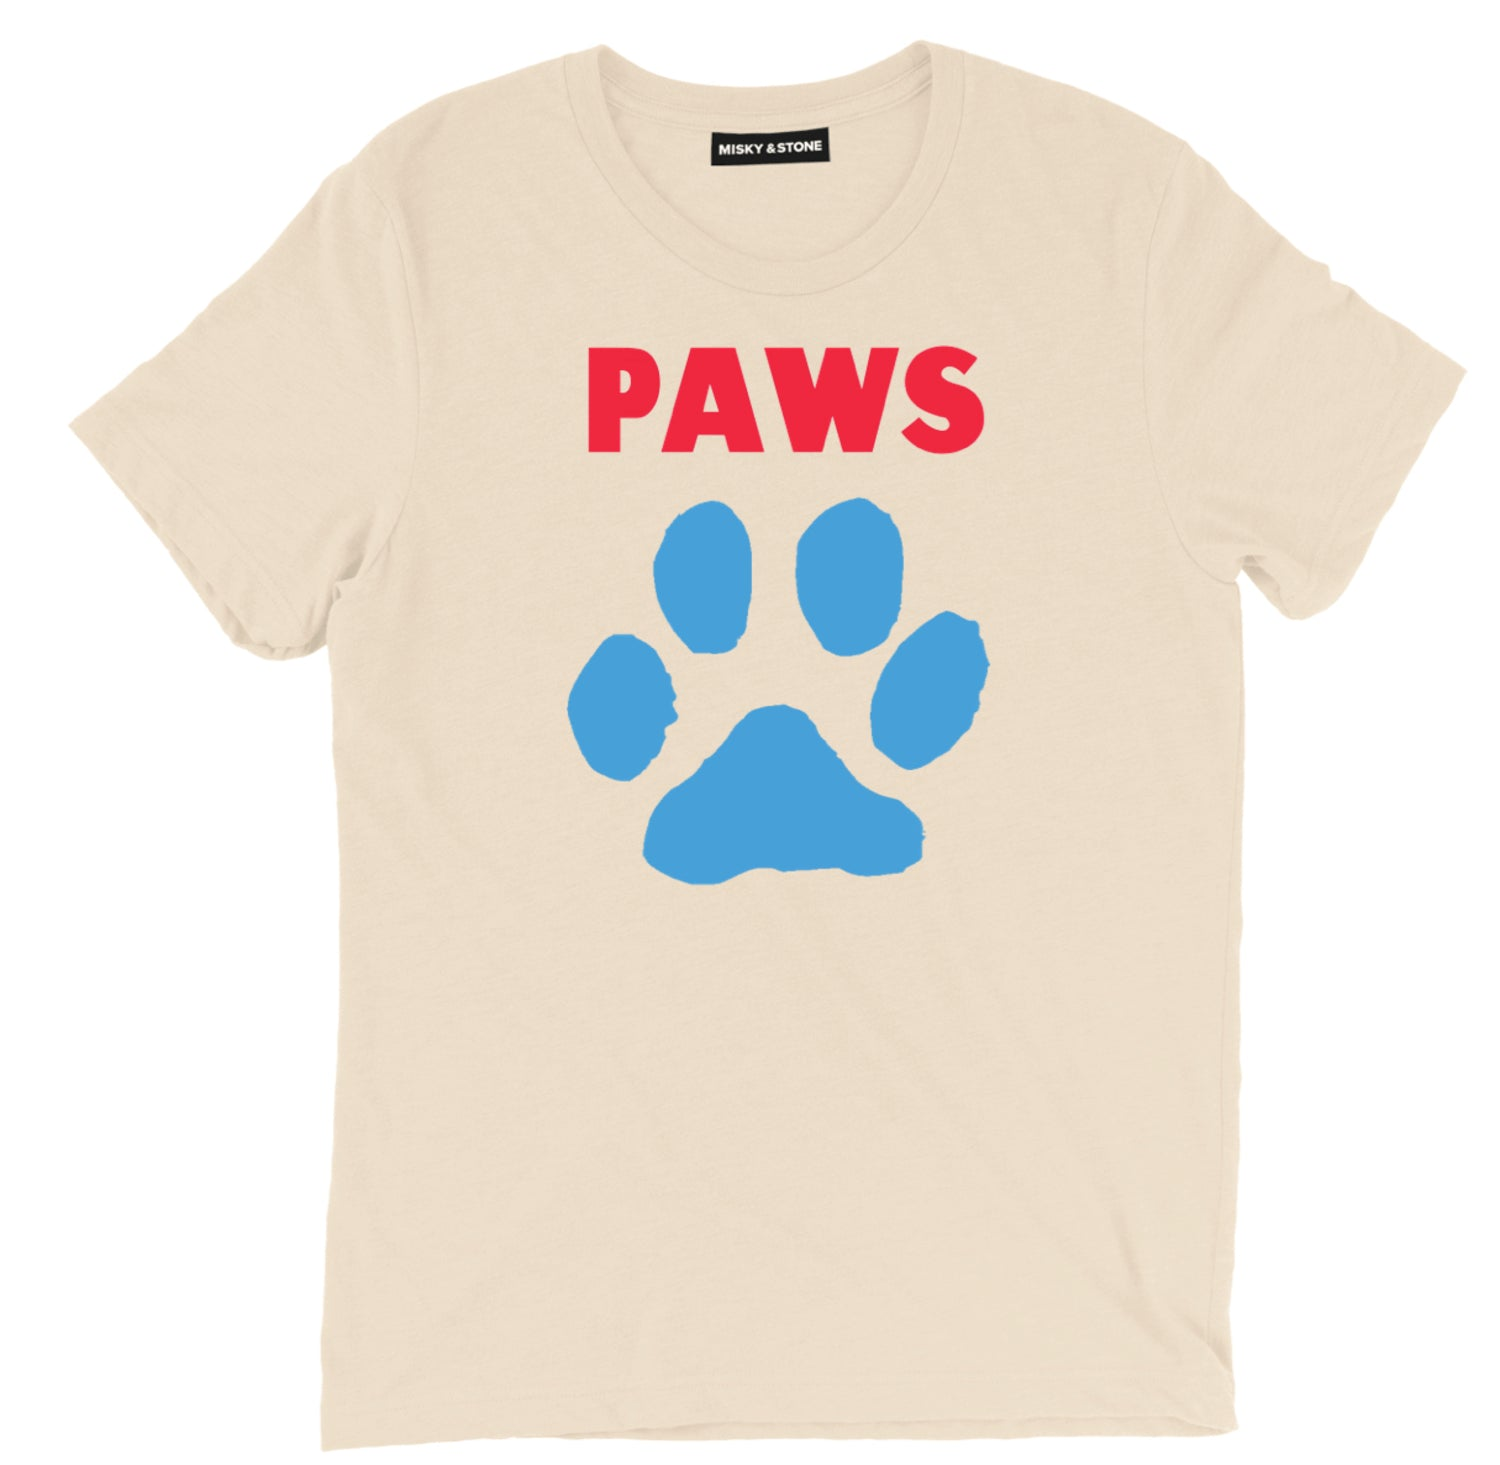 Paws Funny Animal Lovers Movie Spoof T-Shirt